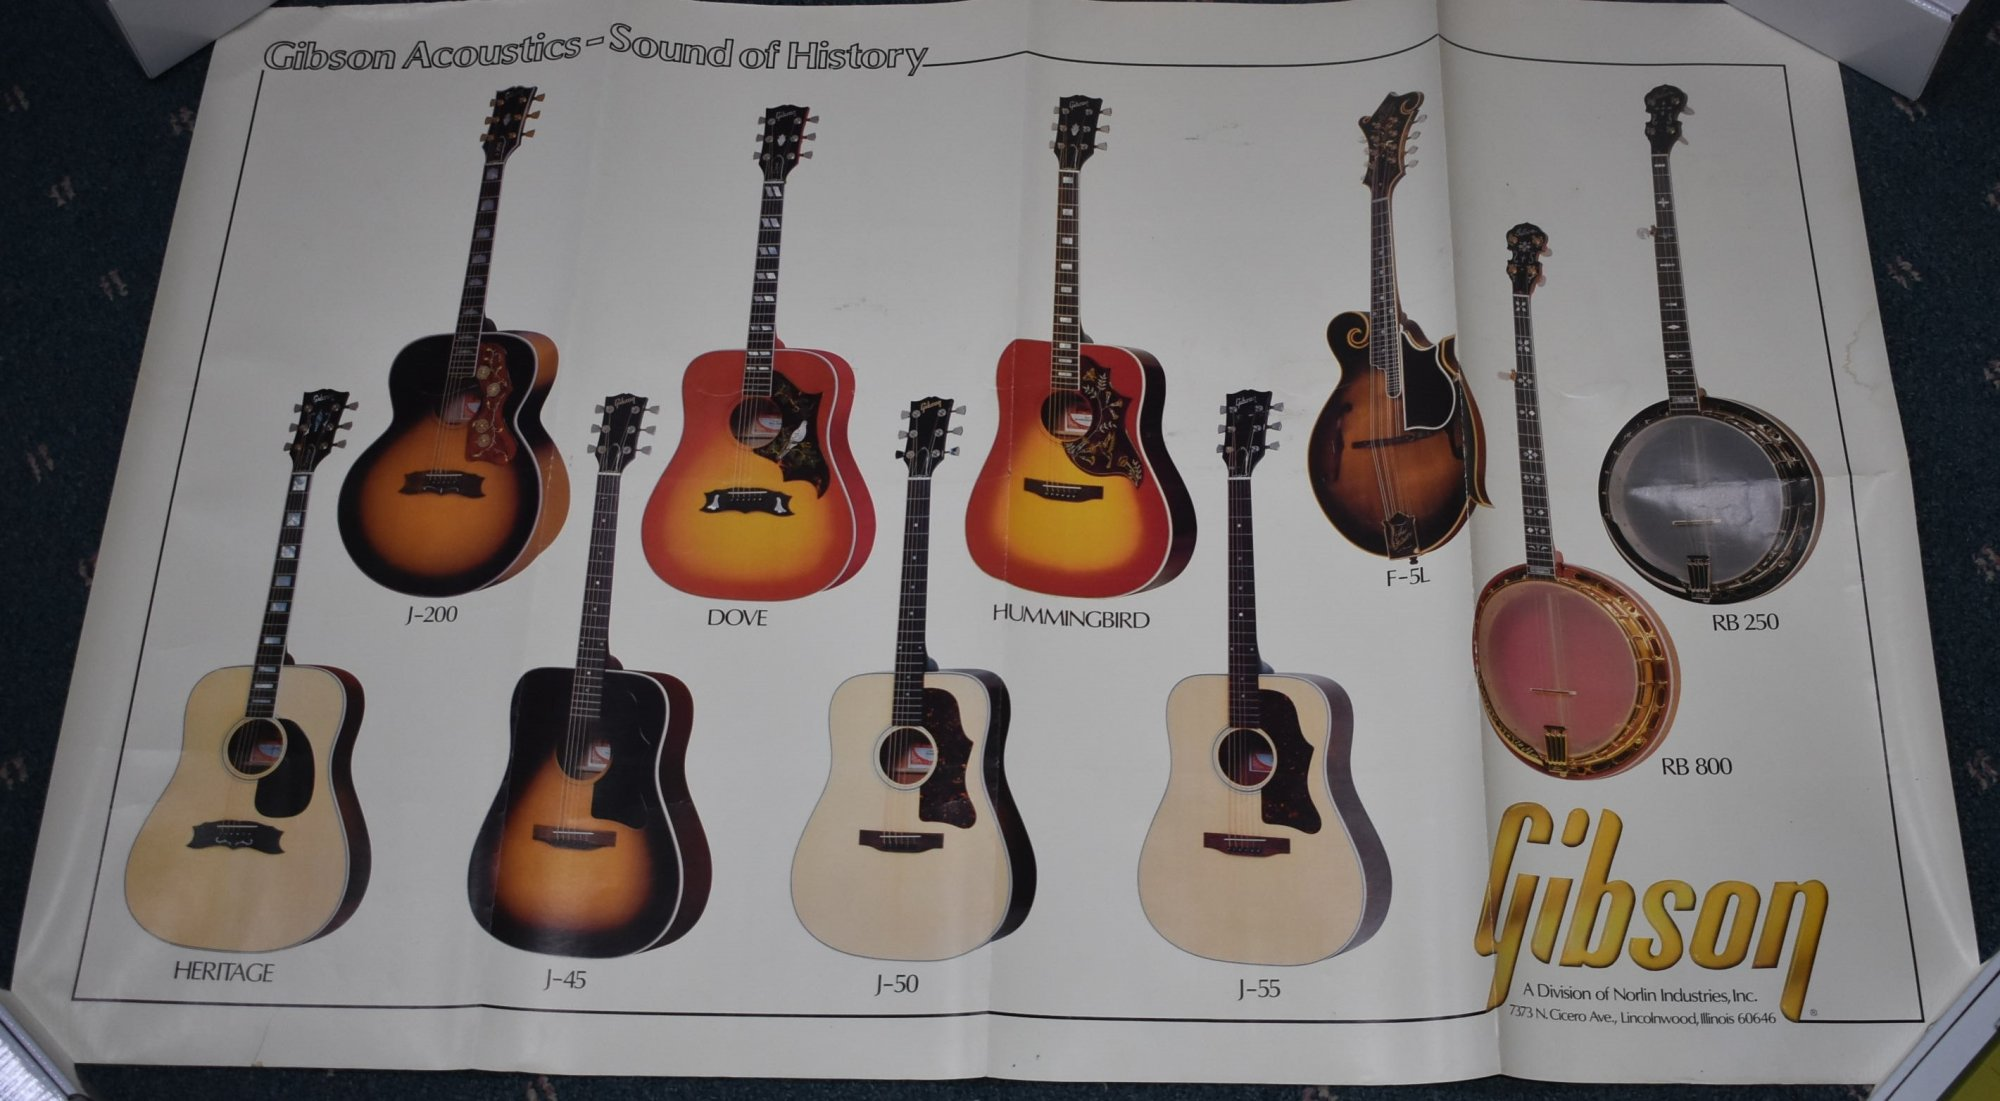 Gibson Acoustics Poster